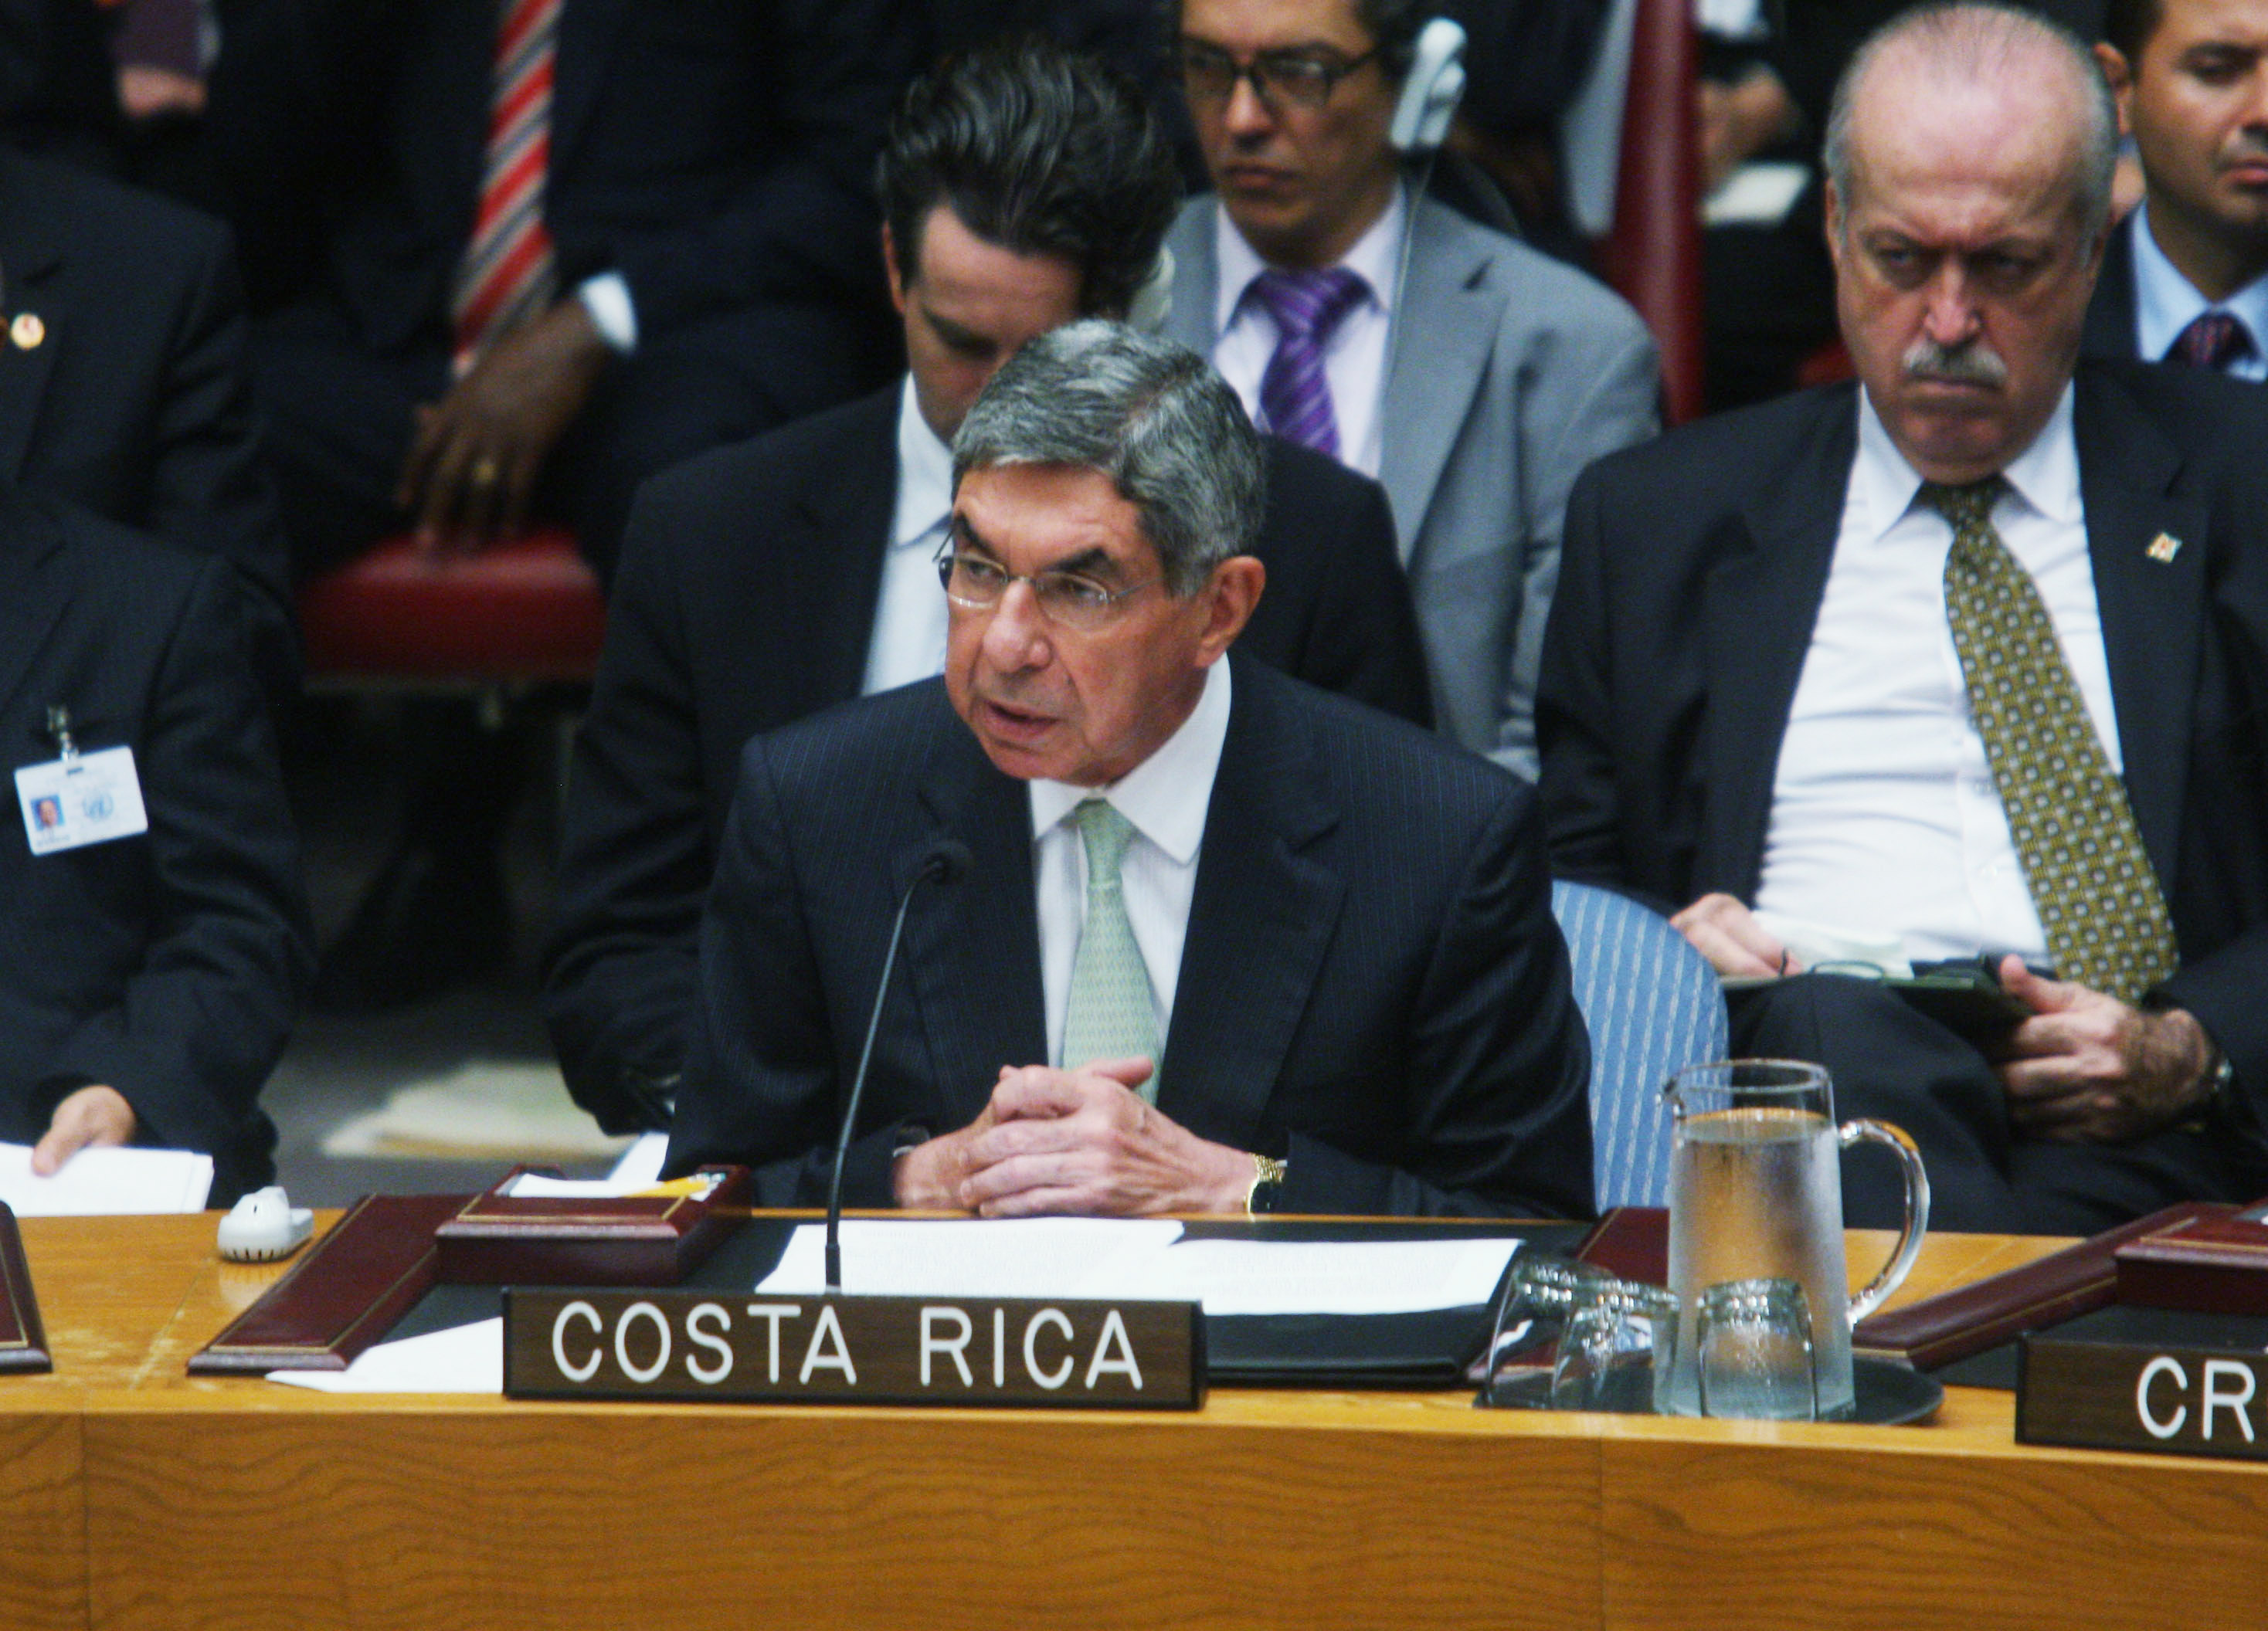 4 Women Accuse Former Costa Rican President Óscar Arias of Sexual Assault